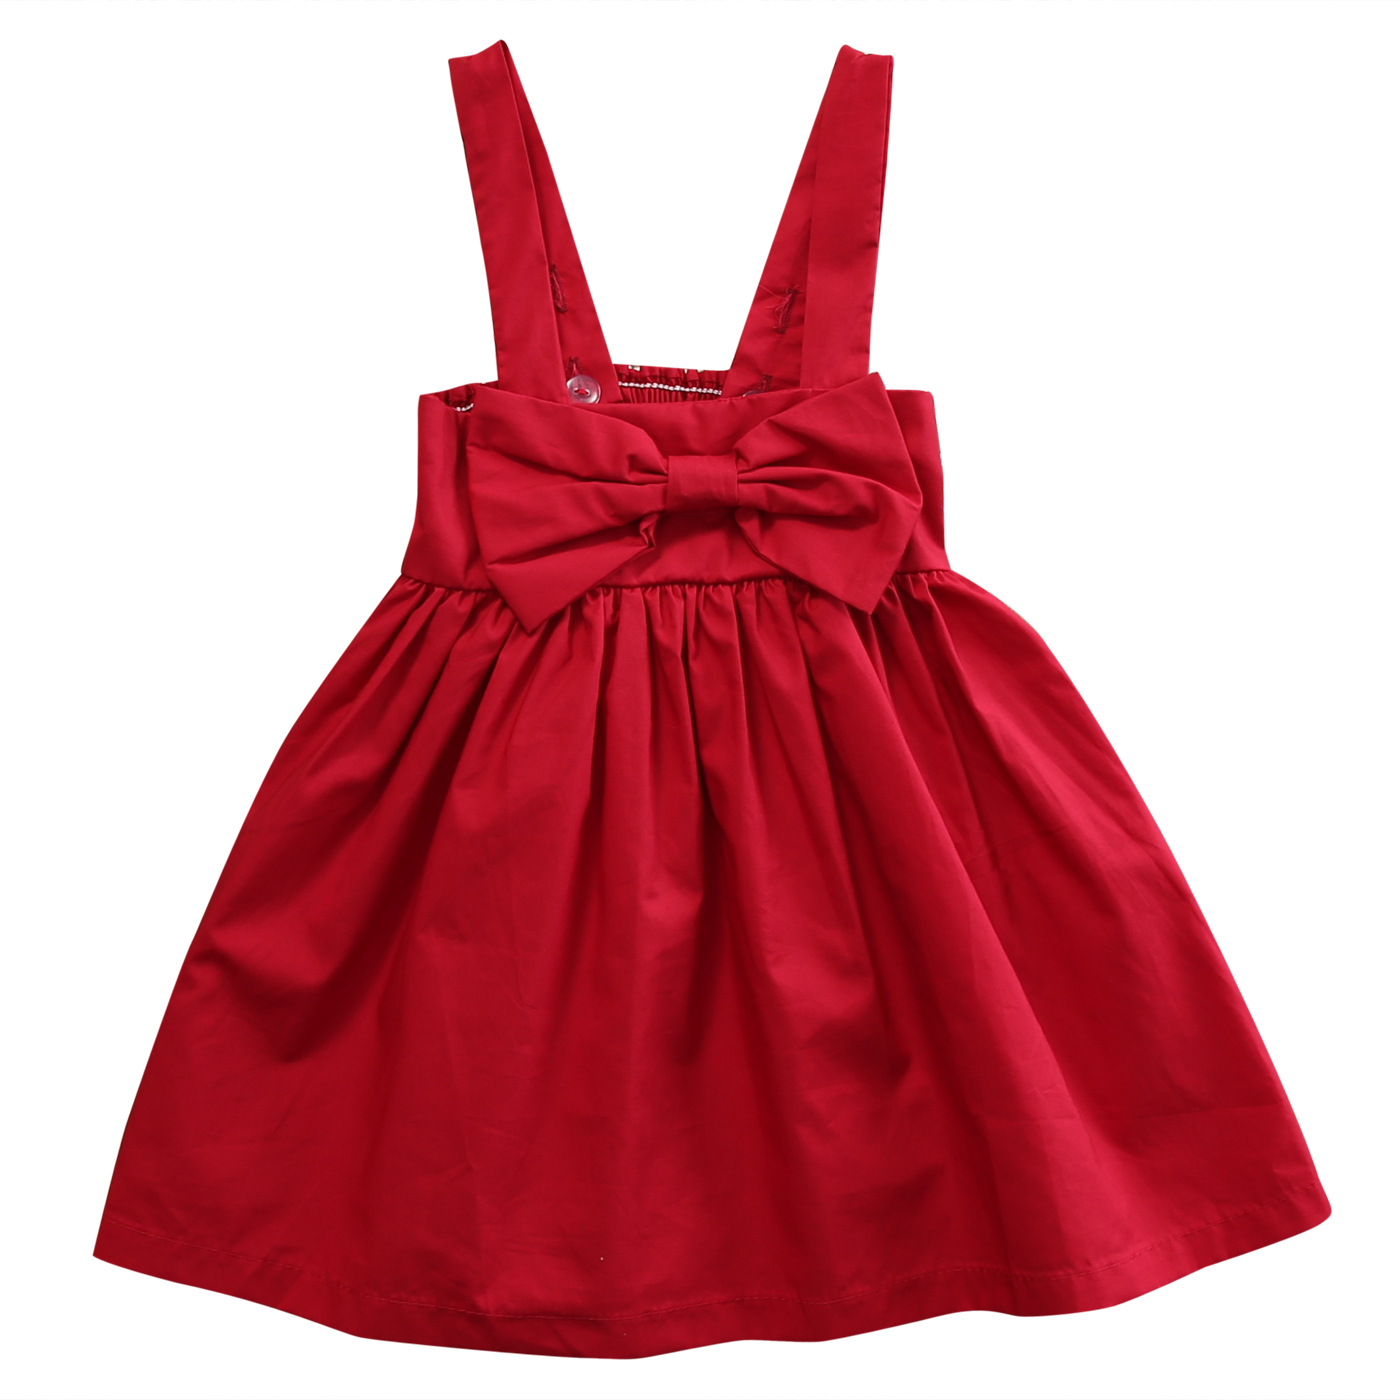 Fashion Summer Newborn Baby Girl Kid Red Sundress Bowknot Short Dress Backless Suspender Outfit Dresses 0-3YEAR